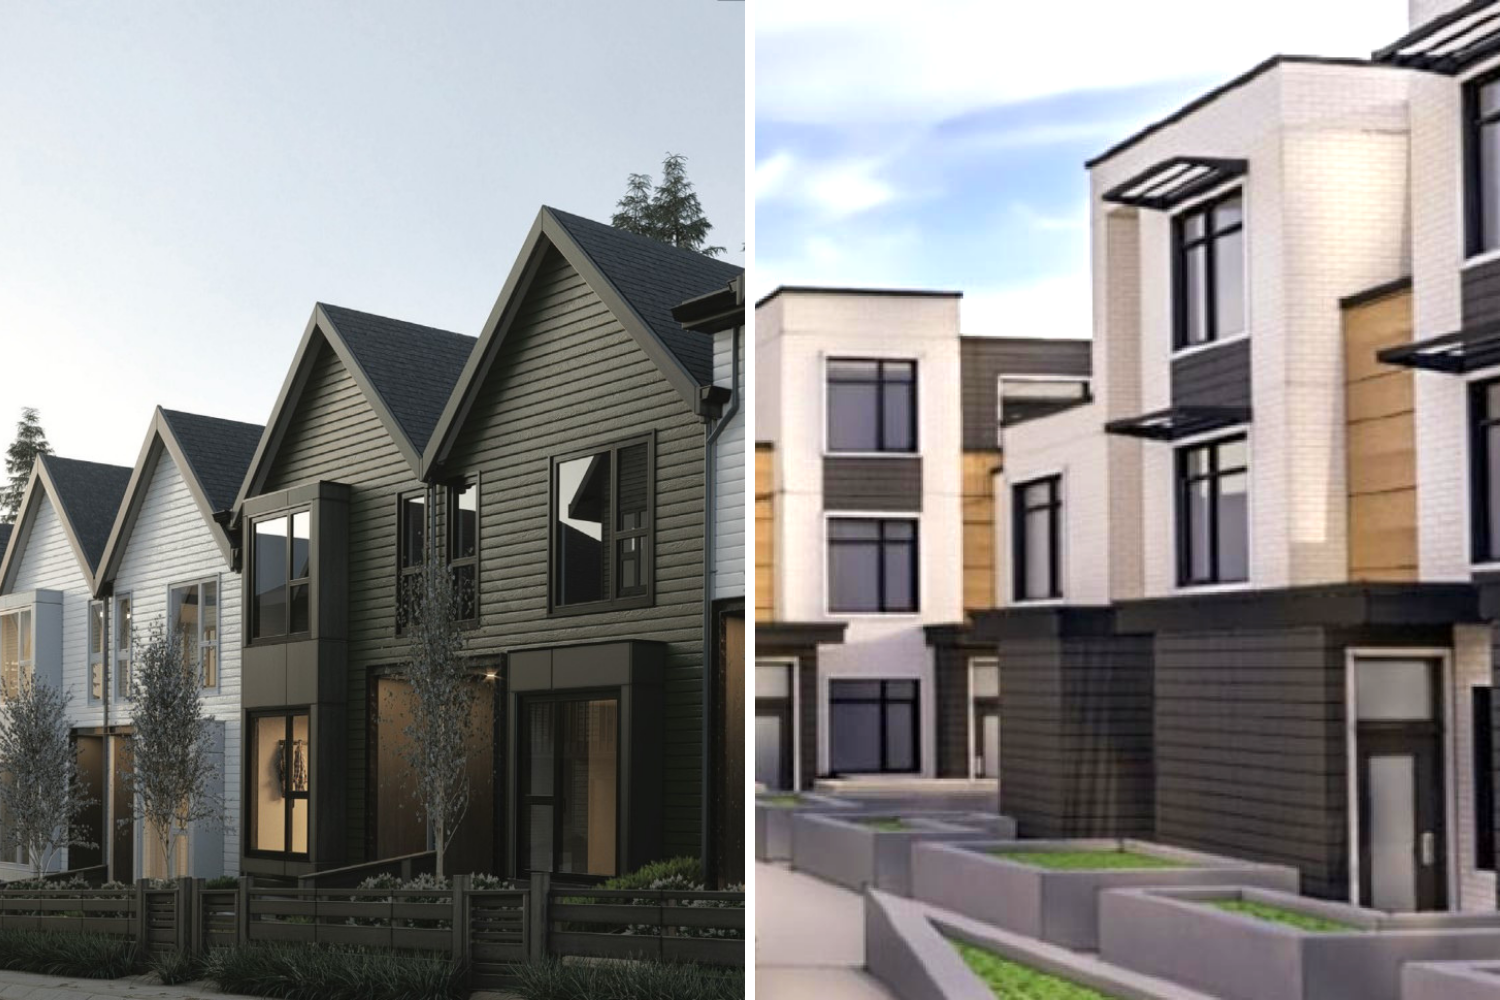 Nest Presales West Coquitlam New Development Townhome Presale